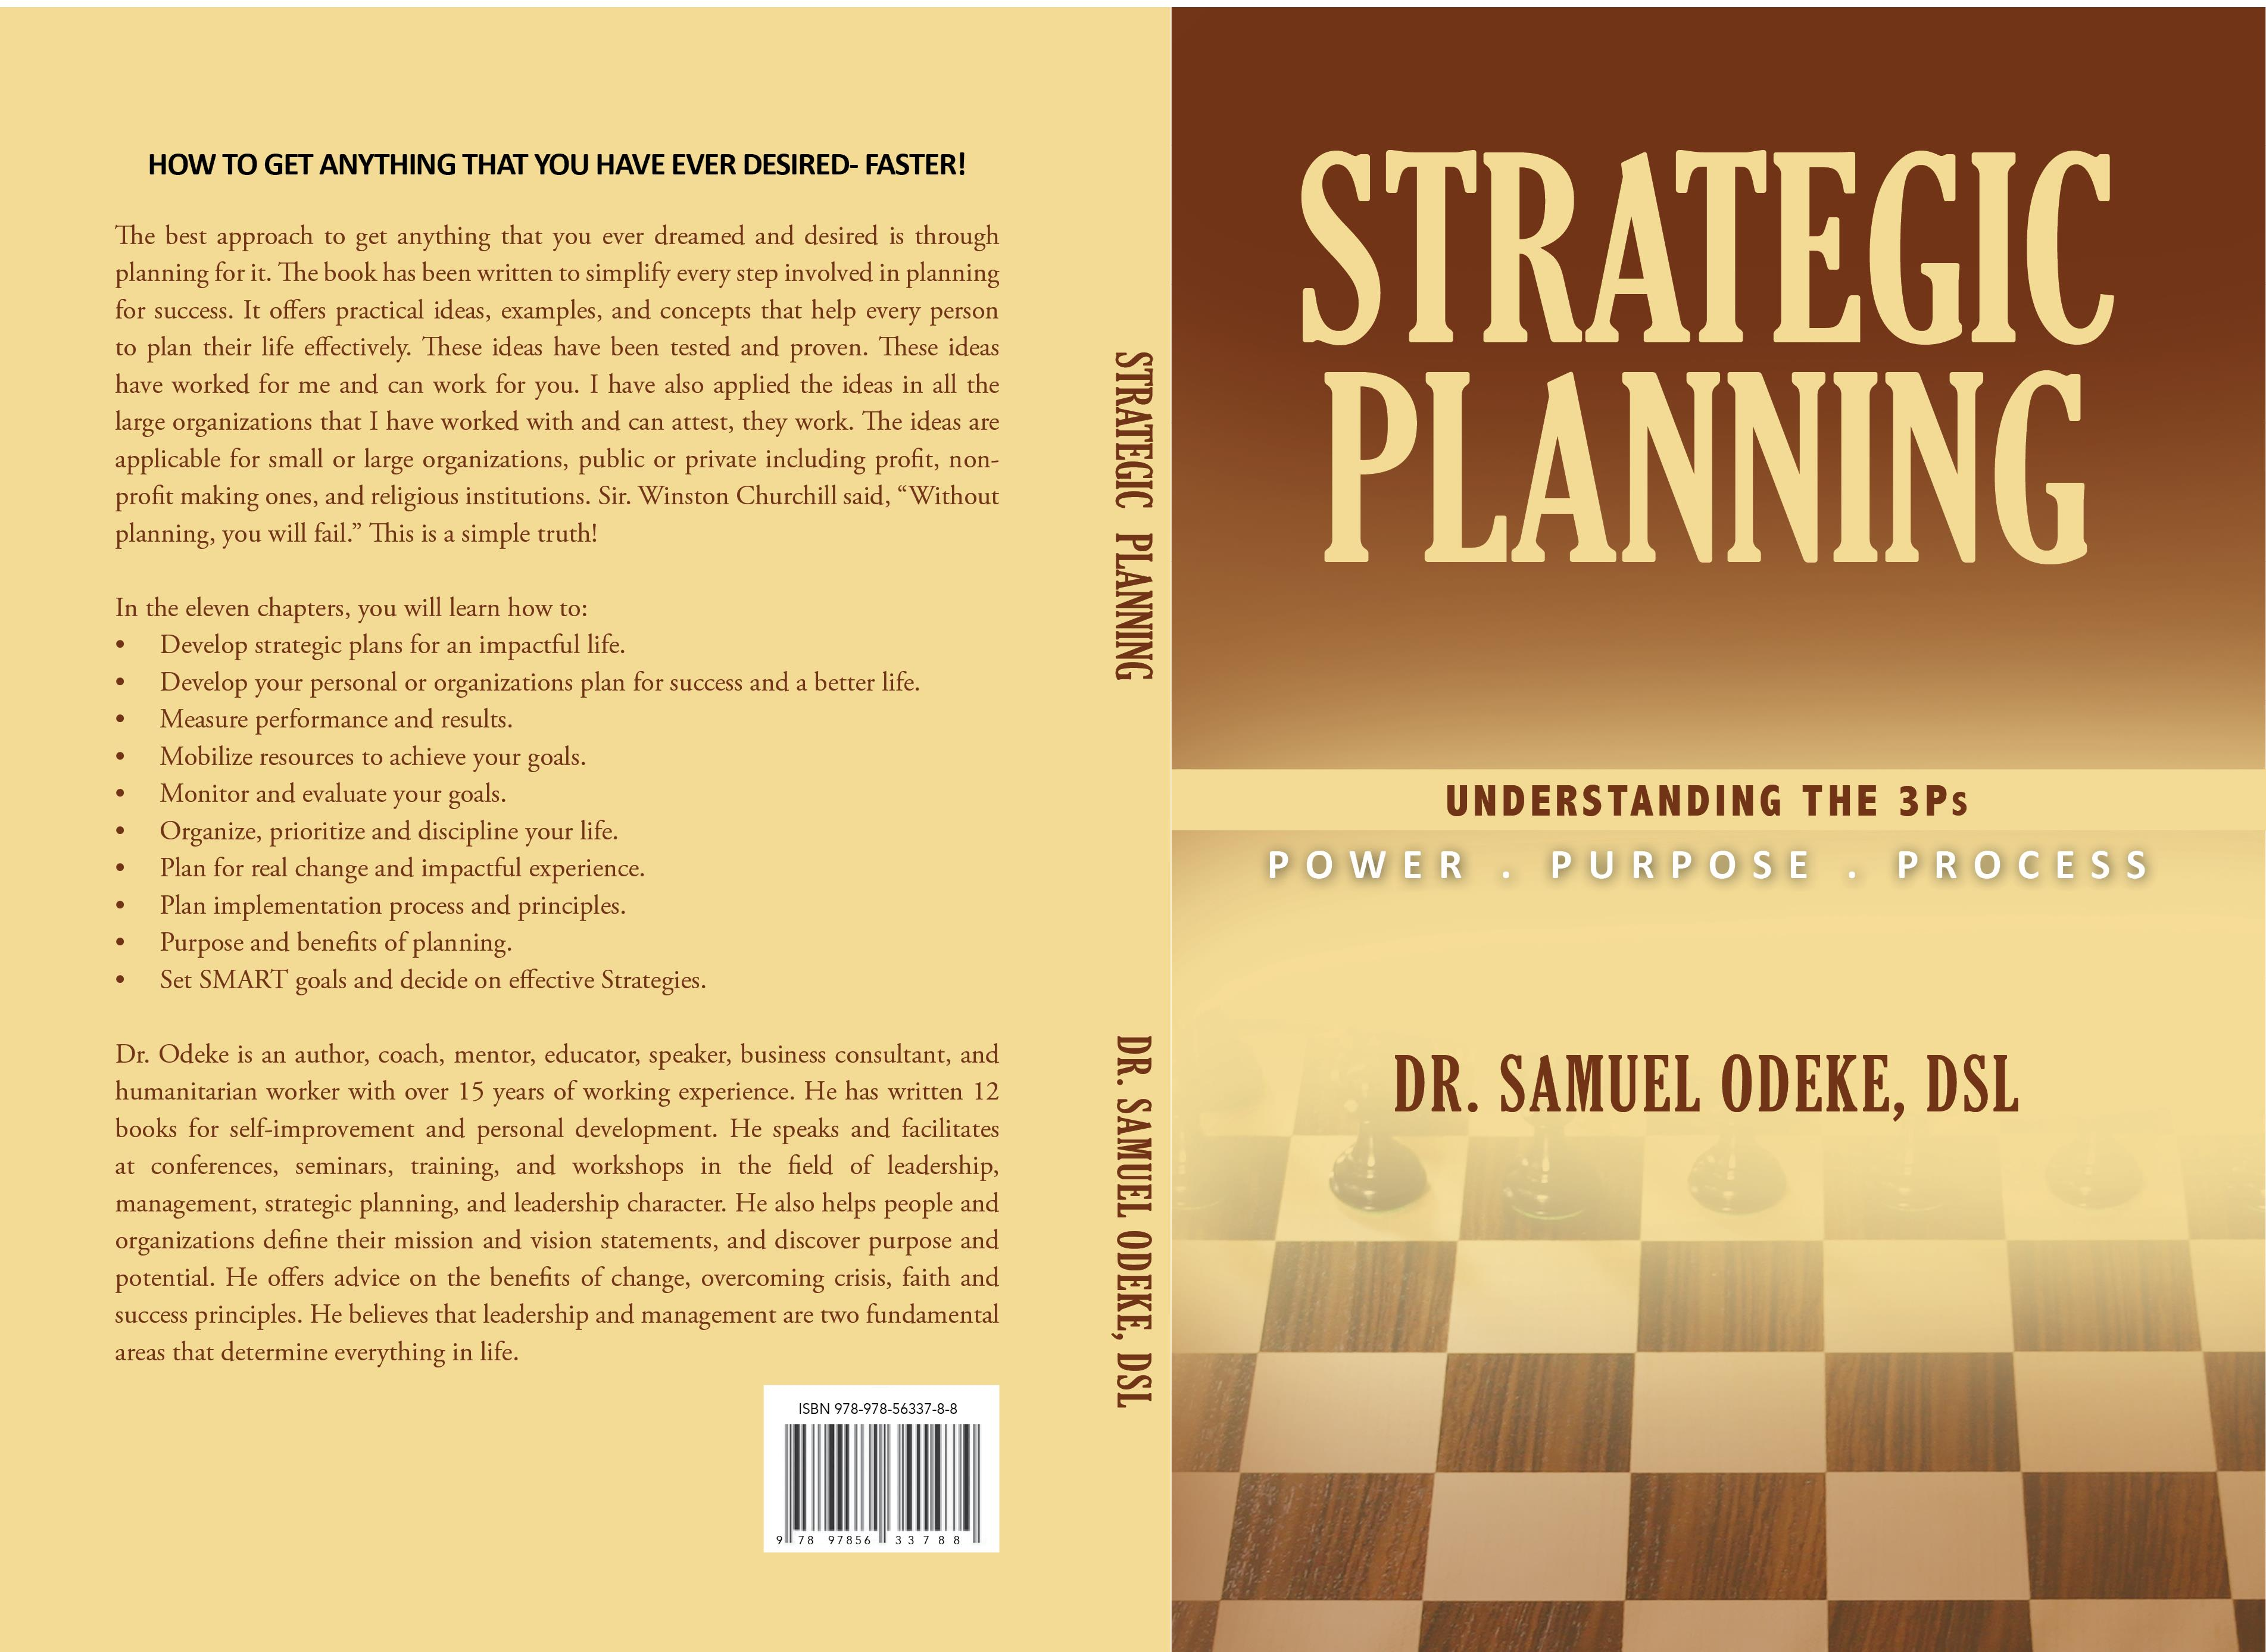 Strategic Planning: Understanding the 3 P's?The Power, Purpose and Process. cover image